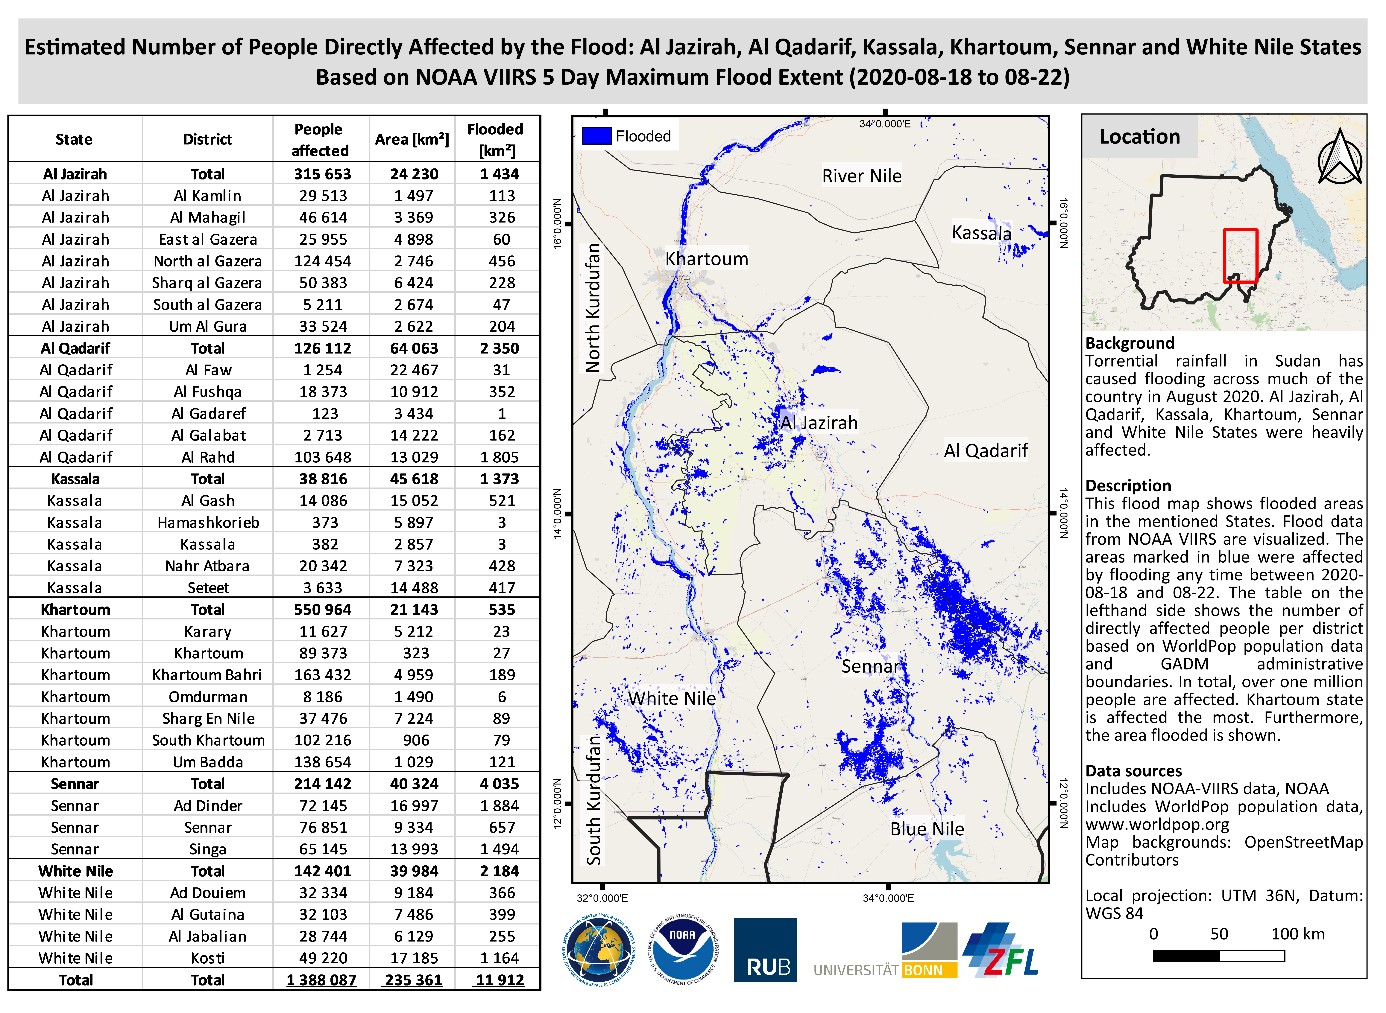 Figure 4: Estimated Number of People and area directly affected by the flood. Map was produced by RUB and ZFL based on previous analysis by NOAA based on VIIRS data